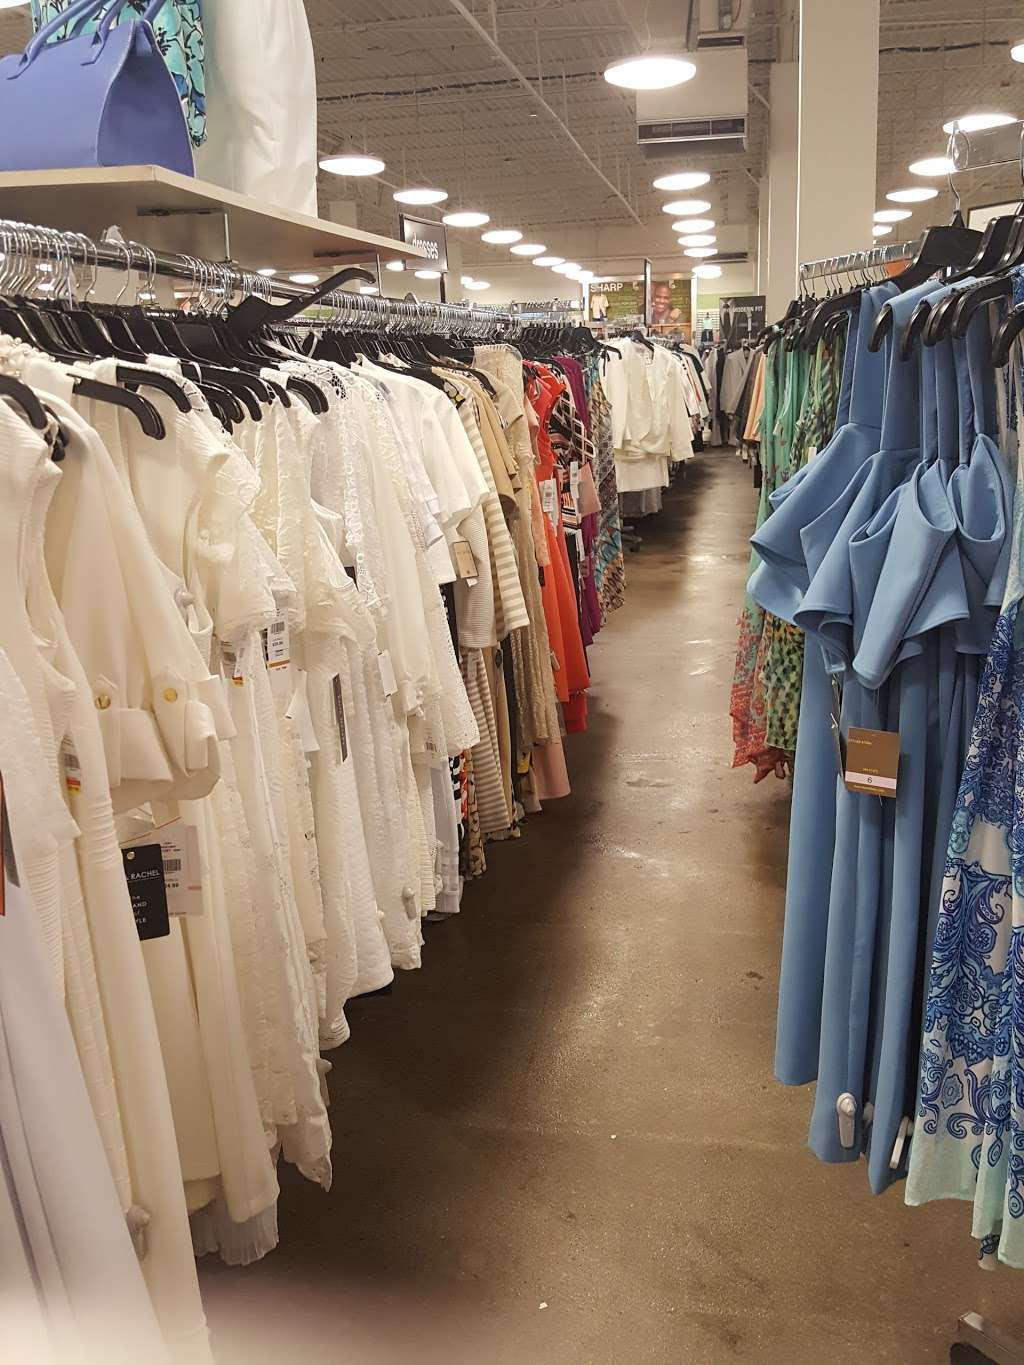 K&G Fashion Superstore - clothing store  | Photo 4 of 10 | Address: 667 North Cockrell Hill, Duncanville, TX 75116, USA | Phone: (972) 298-1718